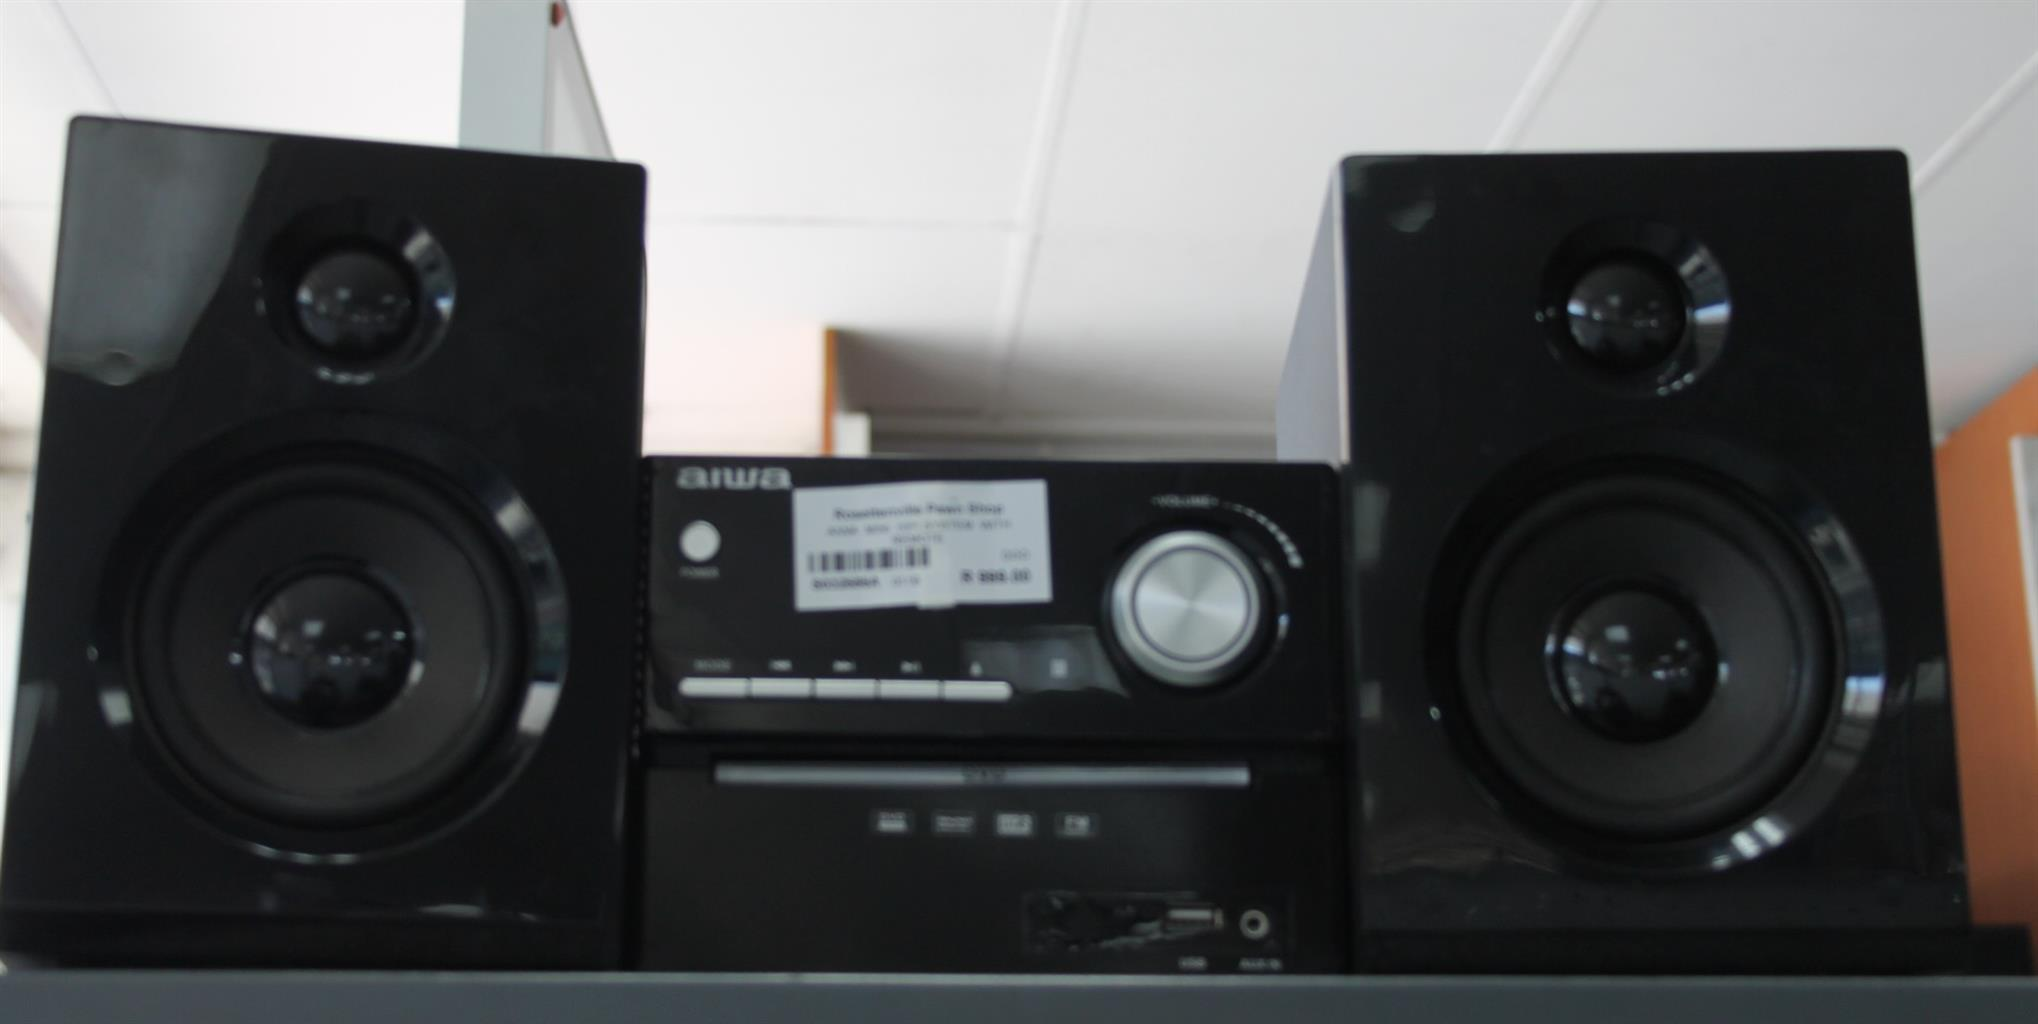 Aiwa mini hifi system with remote S032686A #Rosettenvillepawnshop